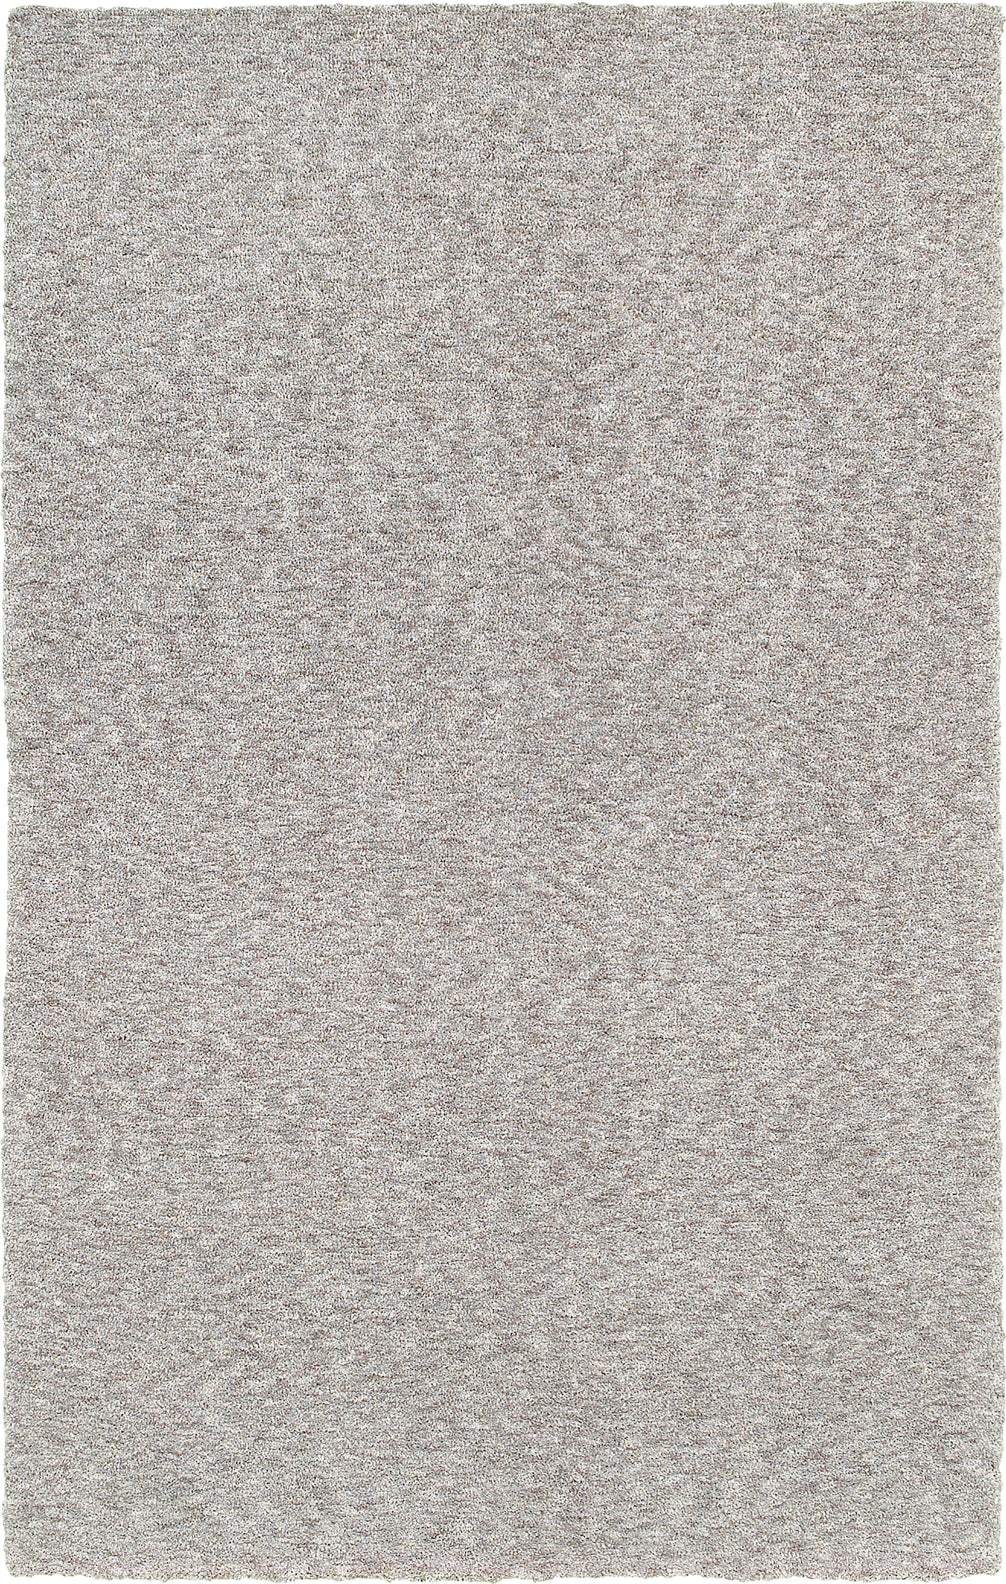 Oriental Weavers Heavenly 73407 Grey/Grey Area Rug main image